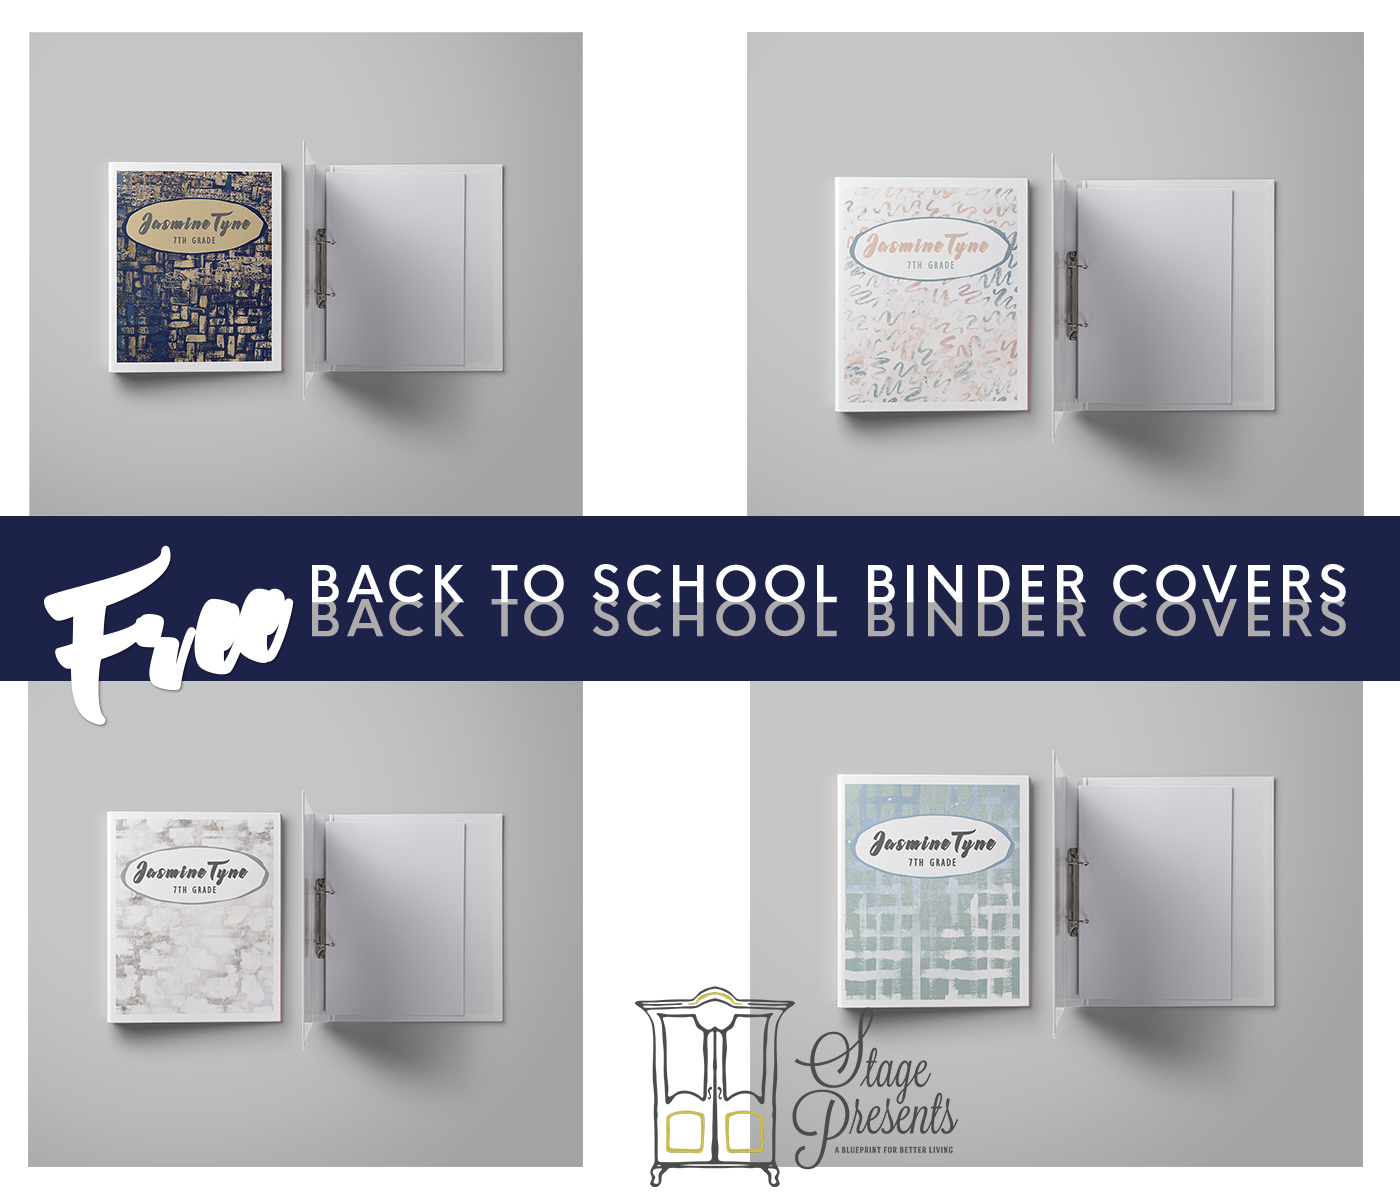 2017 Back to School Binder Covers